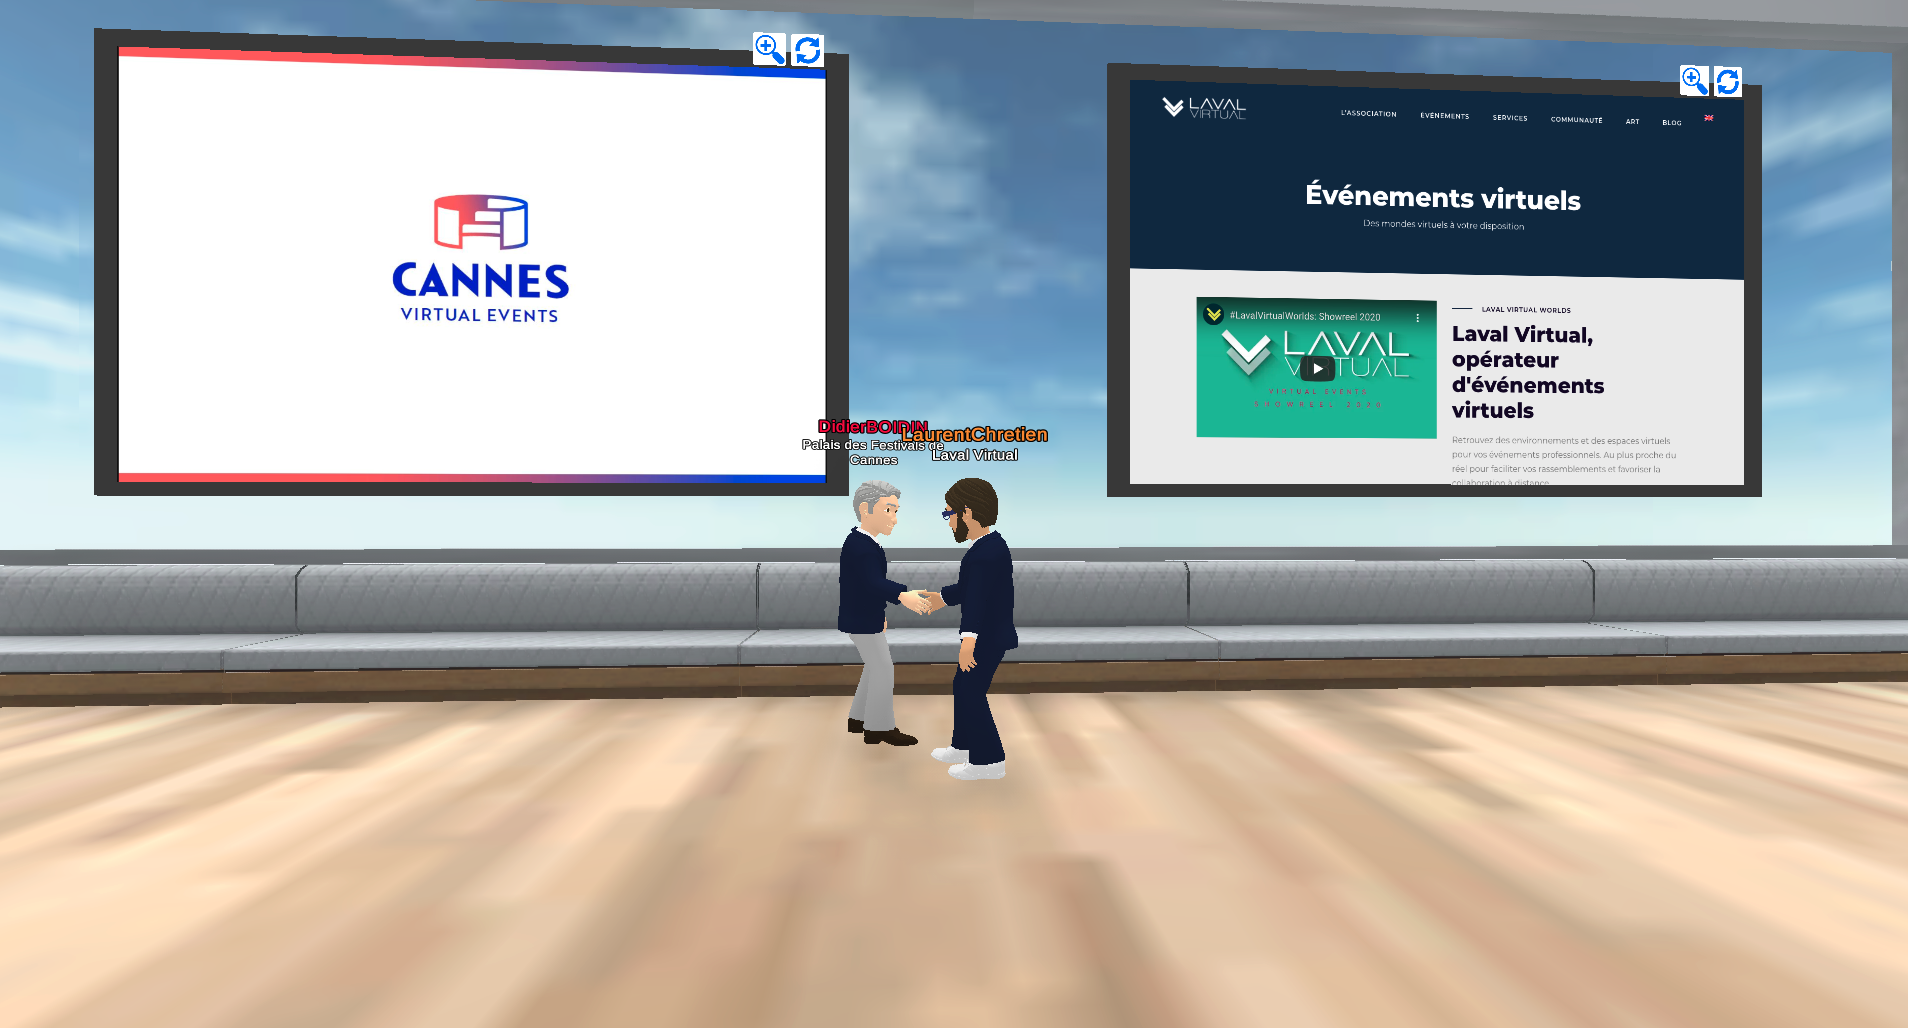 The Palais des Festivals of Cannes joins forces with Laval Virtual to organise virtual events